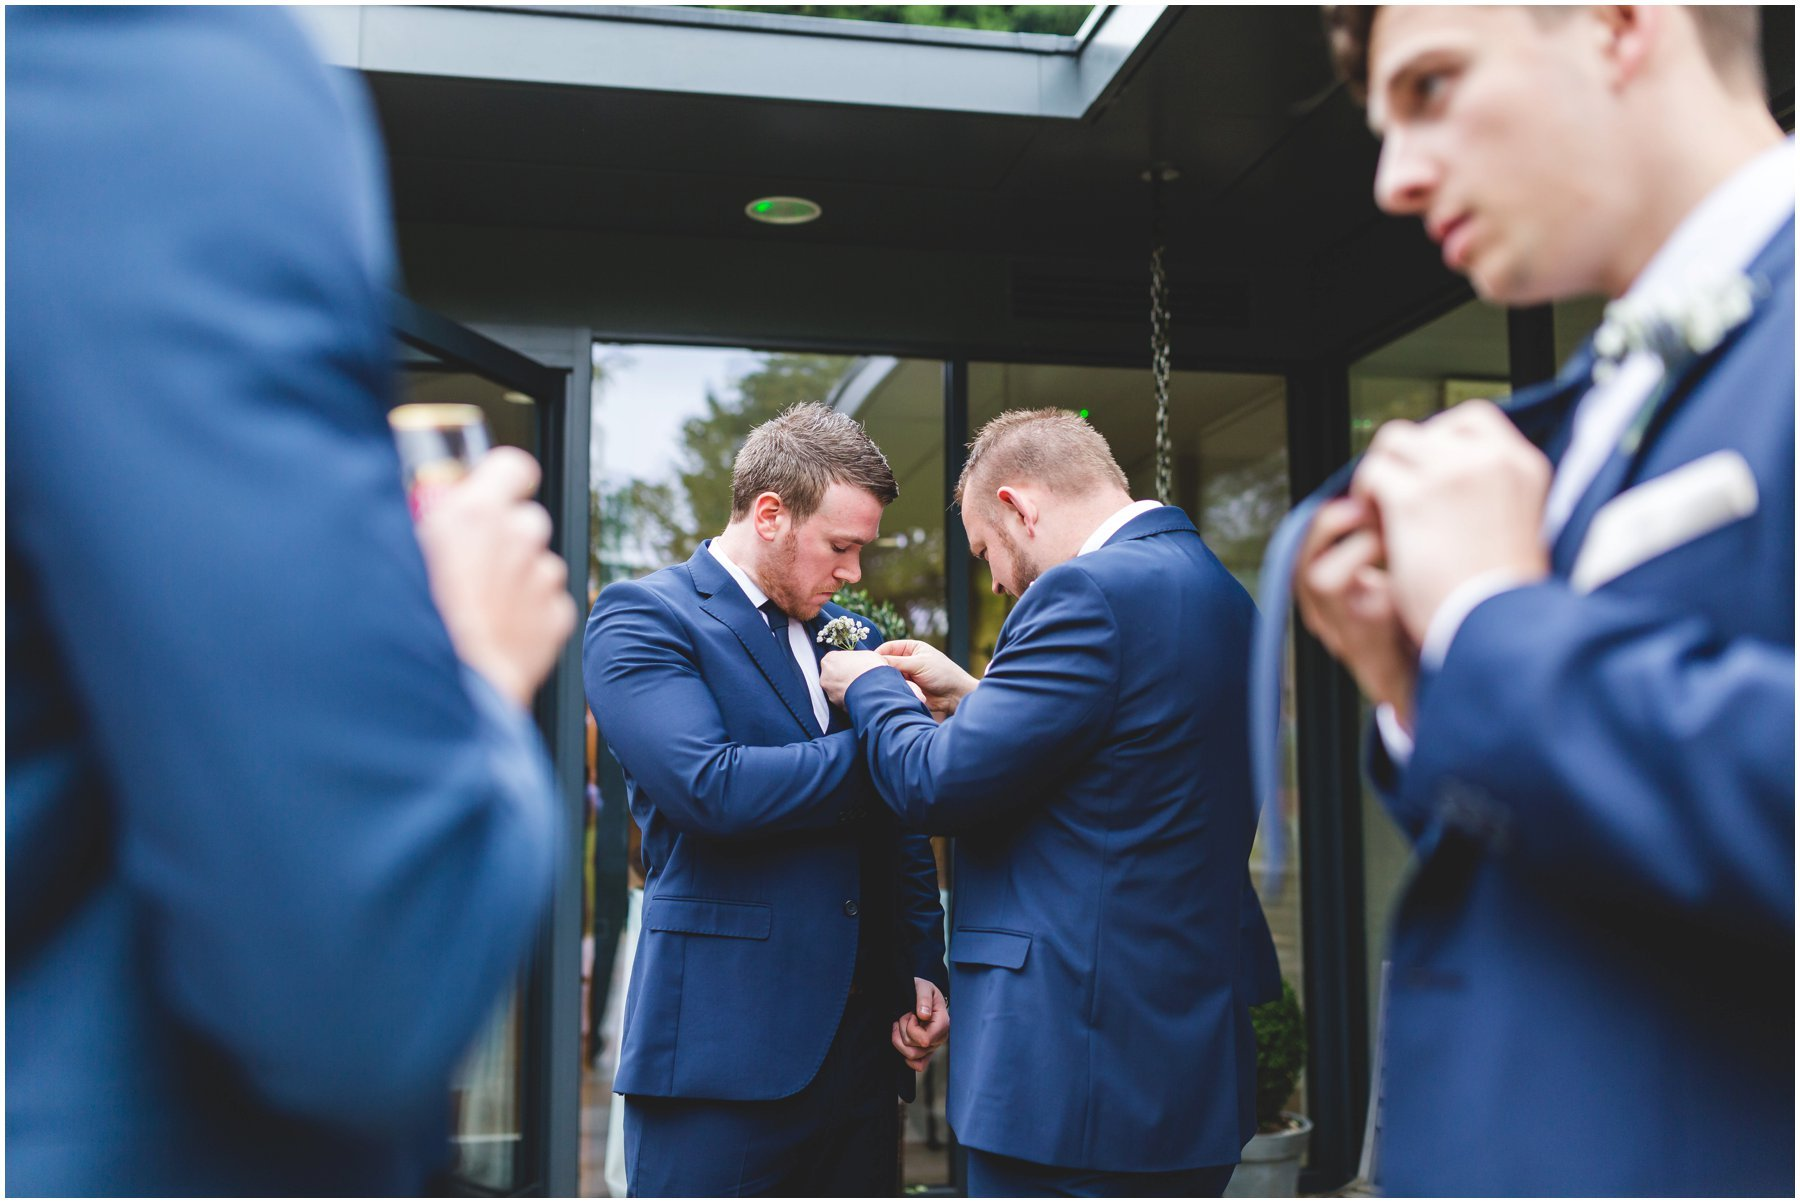 THE NORFOLK MEAD HOTEL WEDDING - DAVID AND SAMANTHA - NORWICH WEDDING PHOTOGRAPHER 5